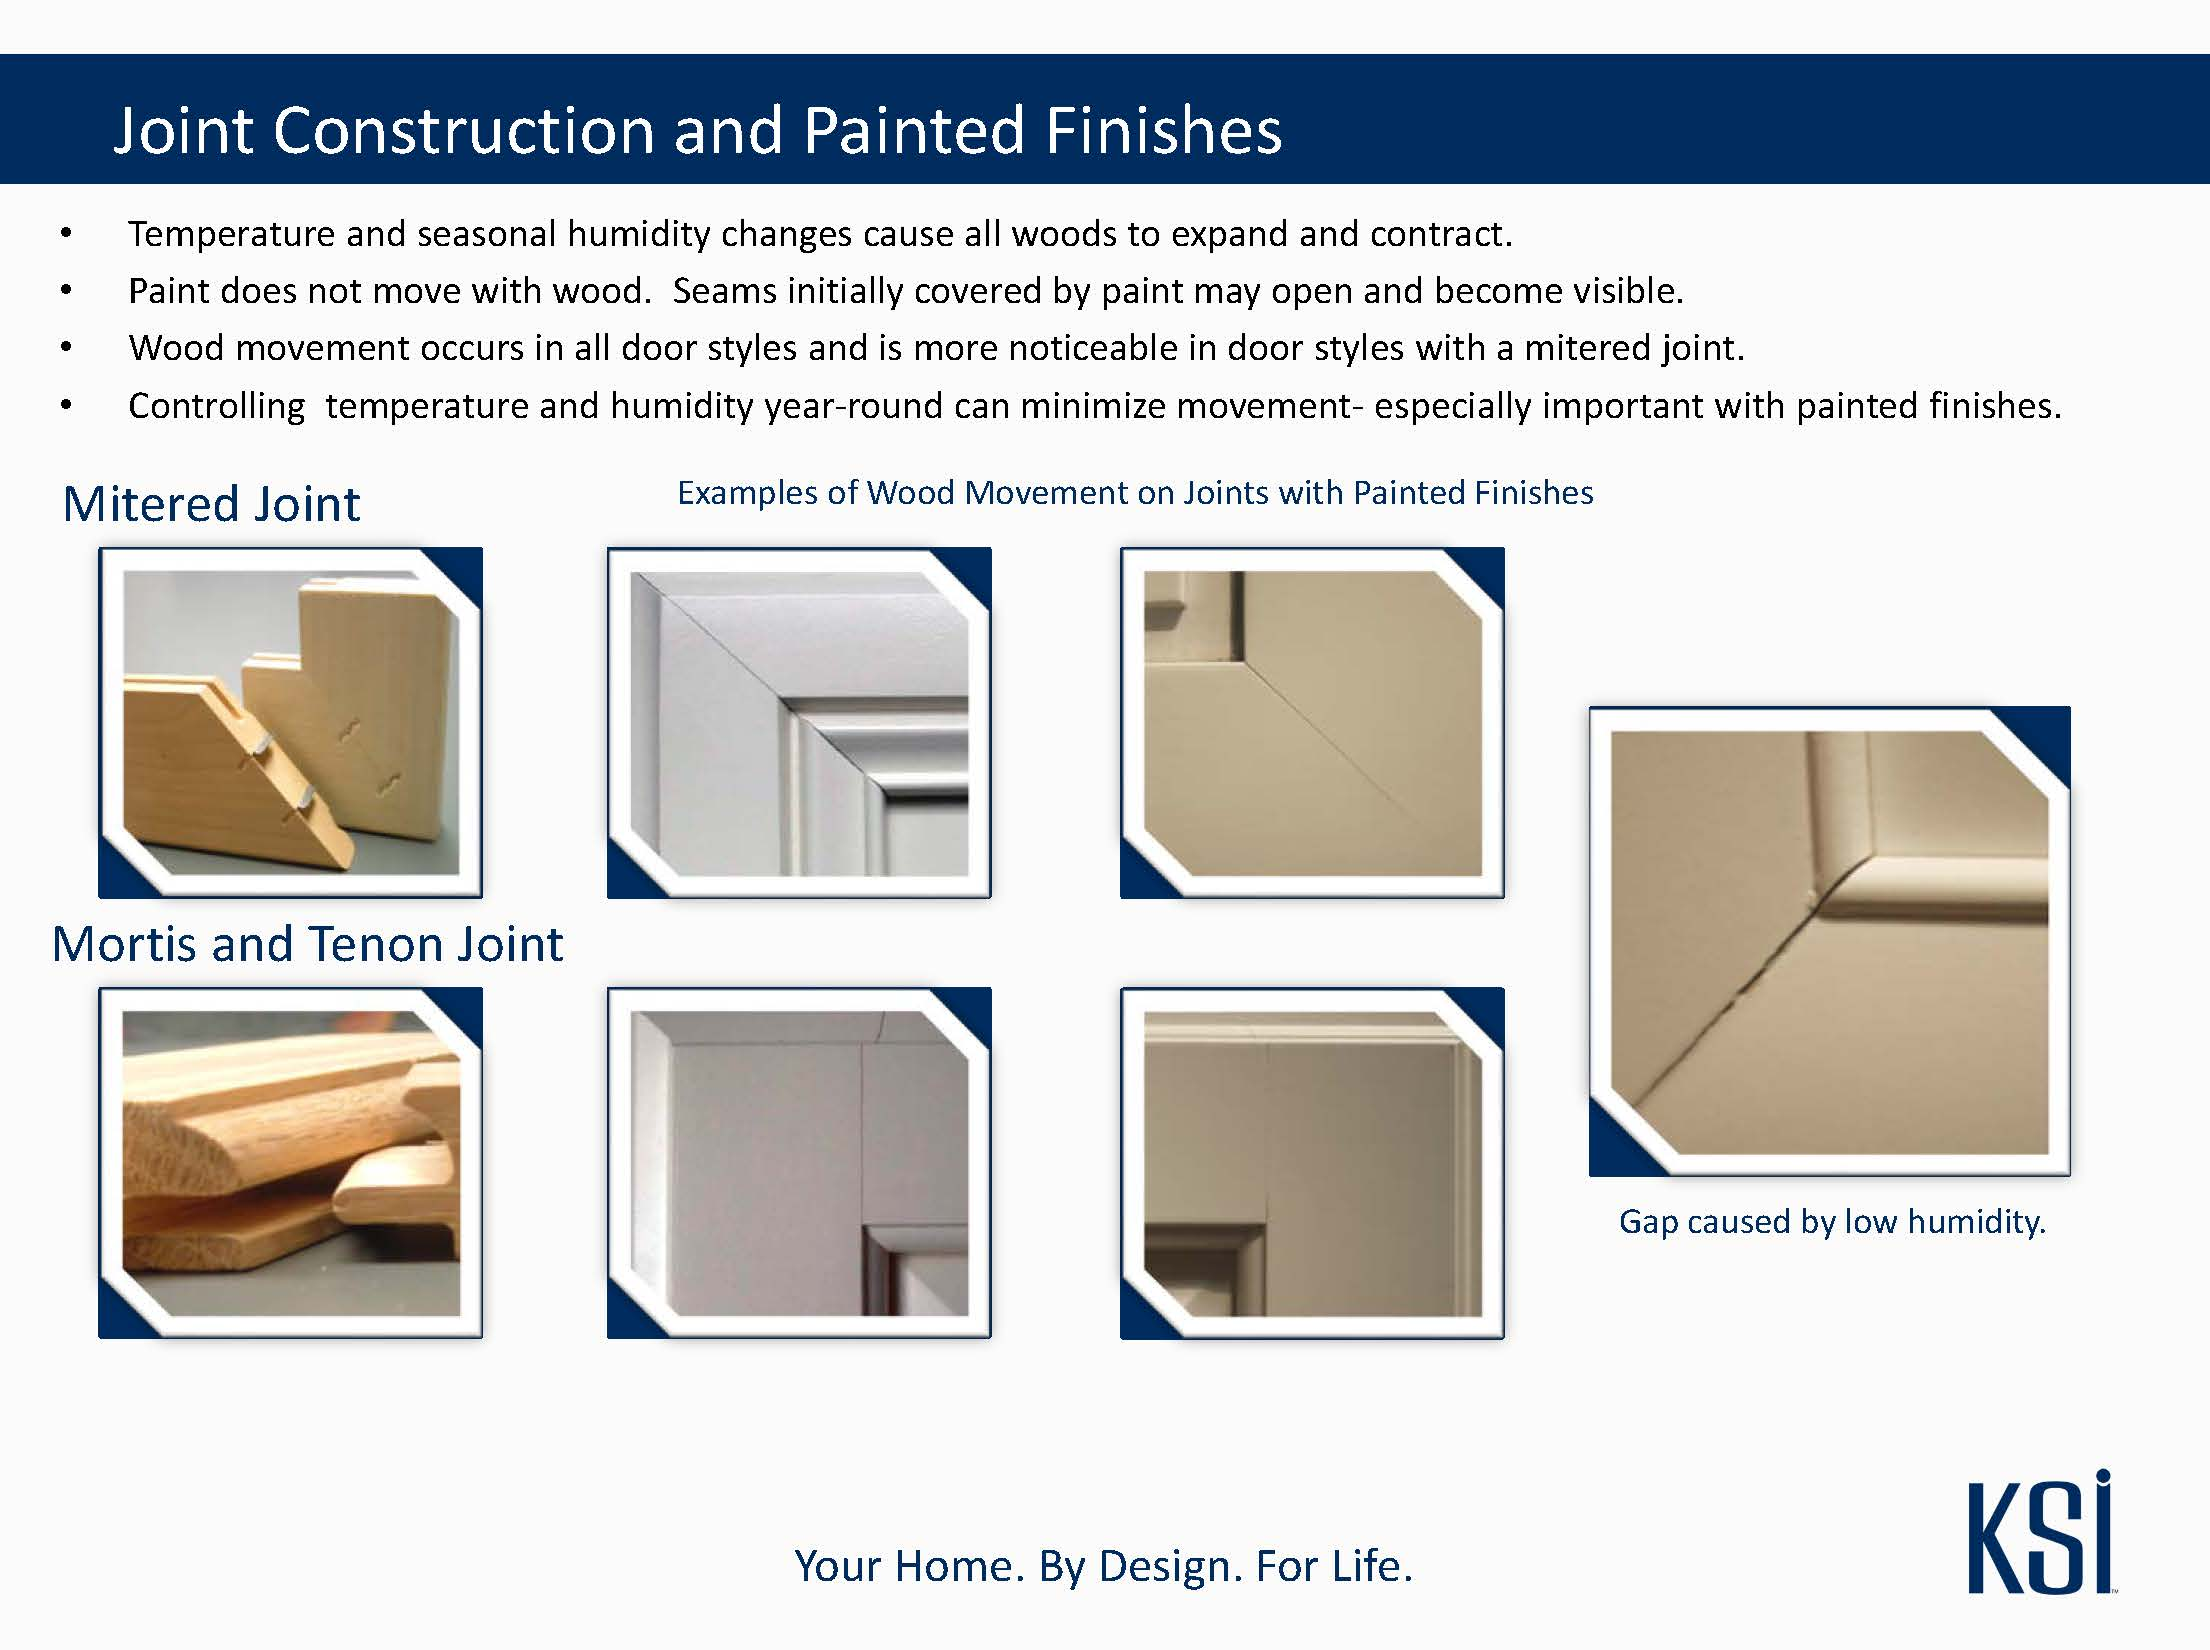 Cabinetry Joint Construction and Painted Finishes